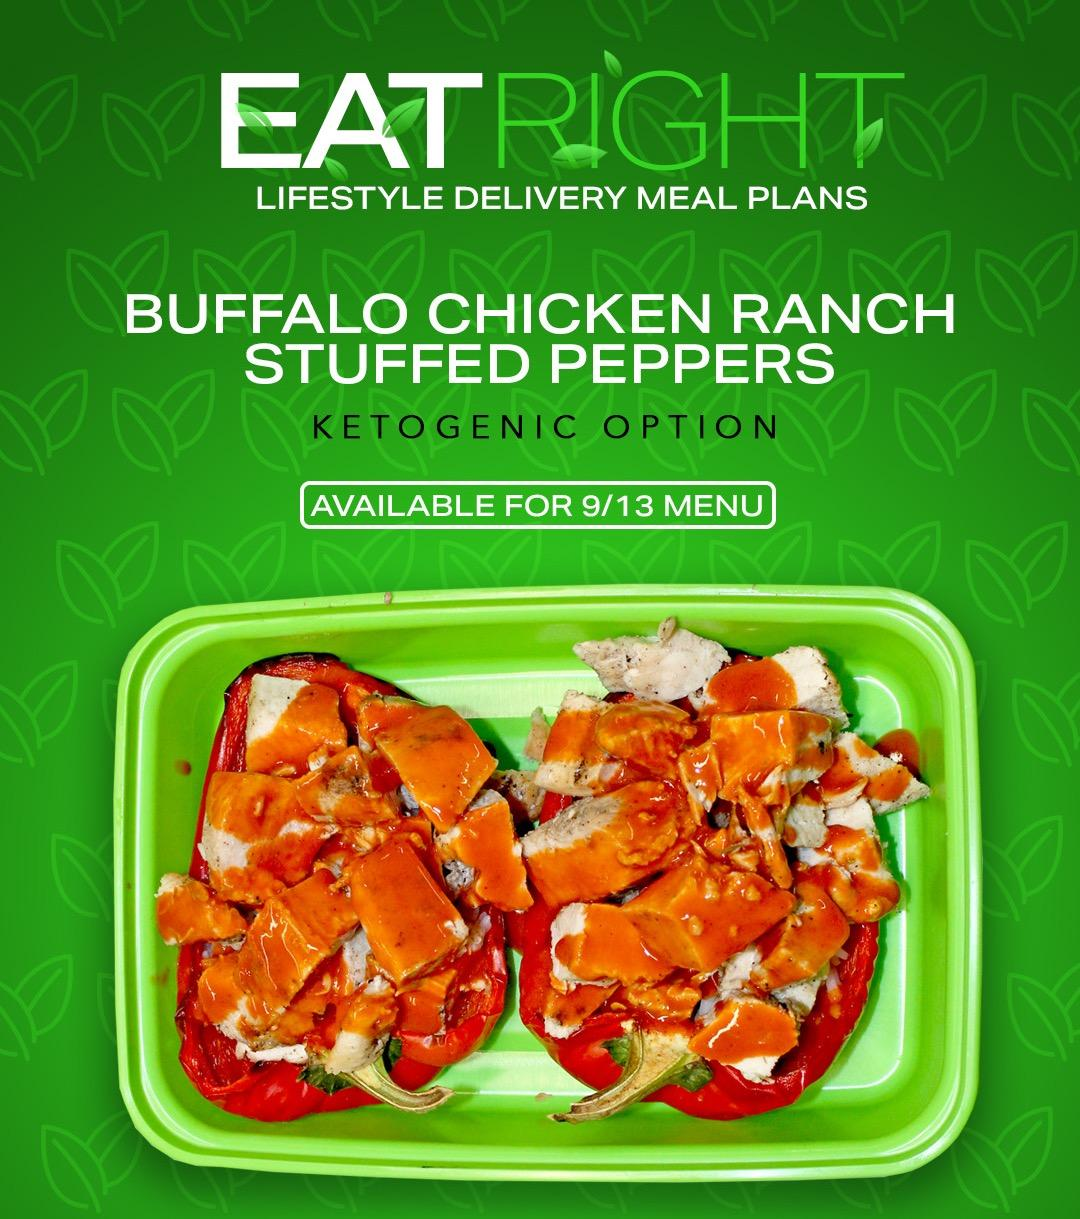 Eat Right Meal Plans image 2